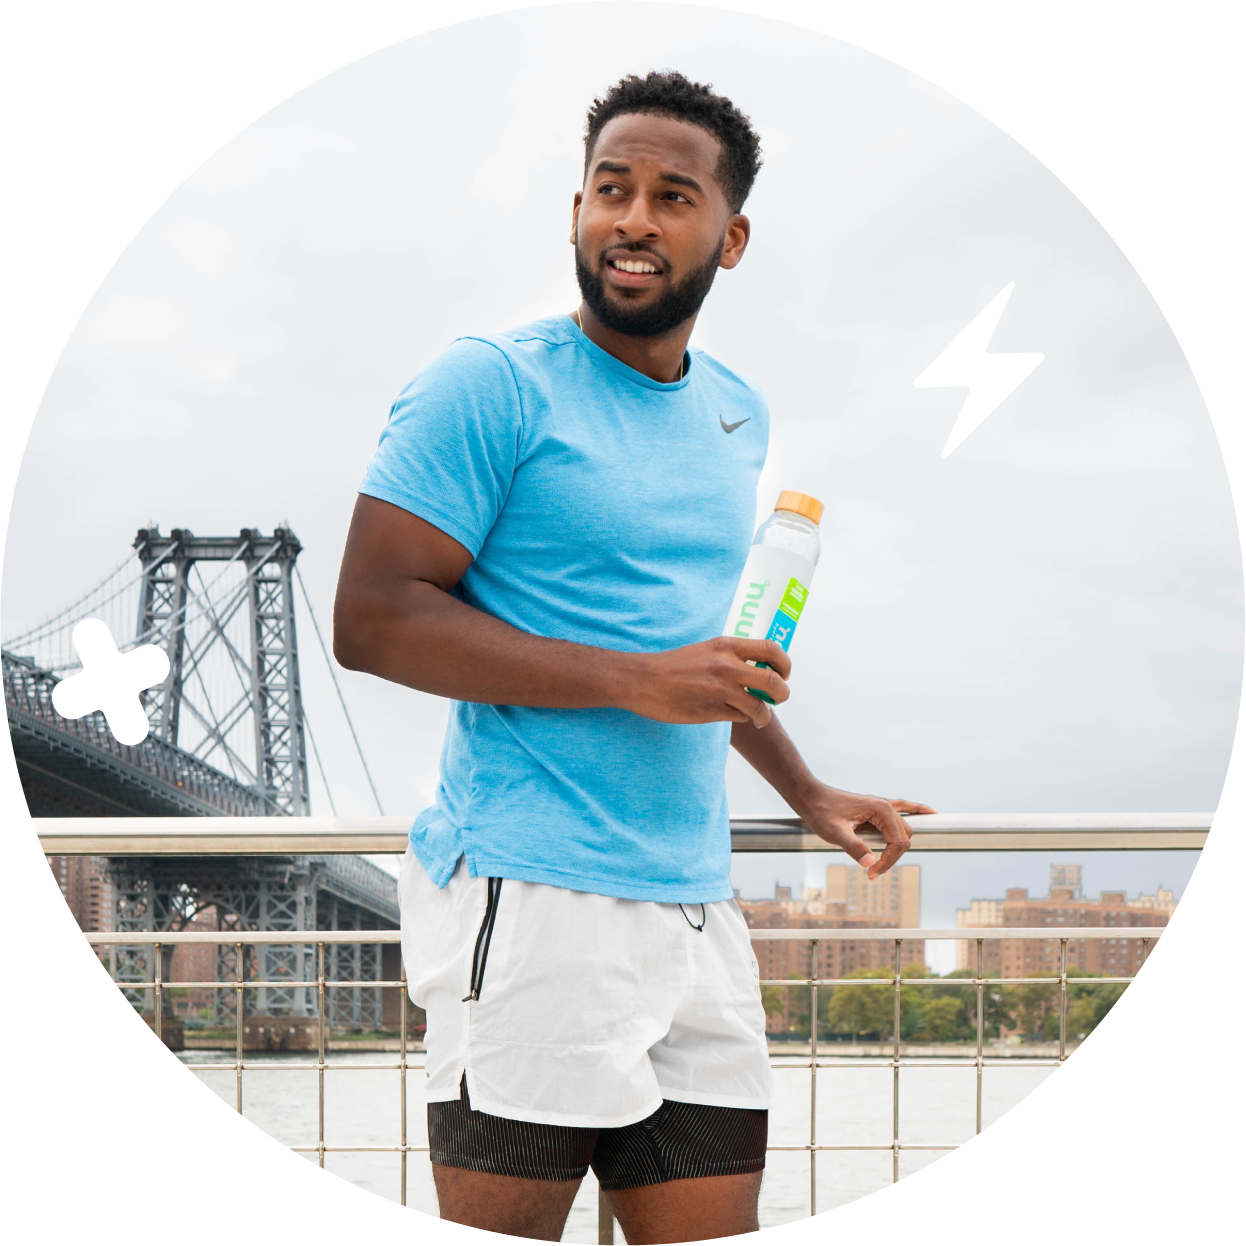 Man standing by a bridge holding a water bottle and Nuun Instant